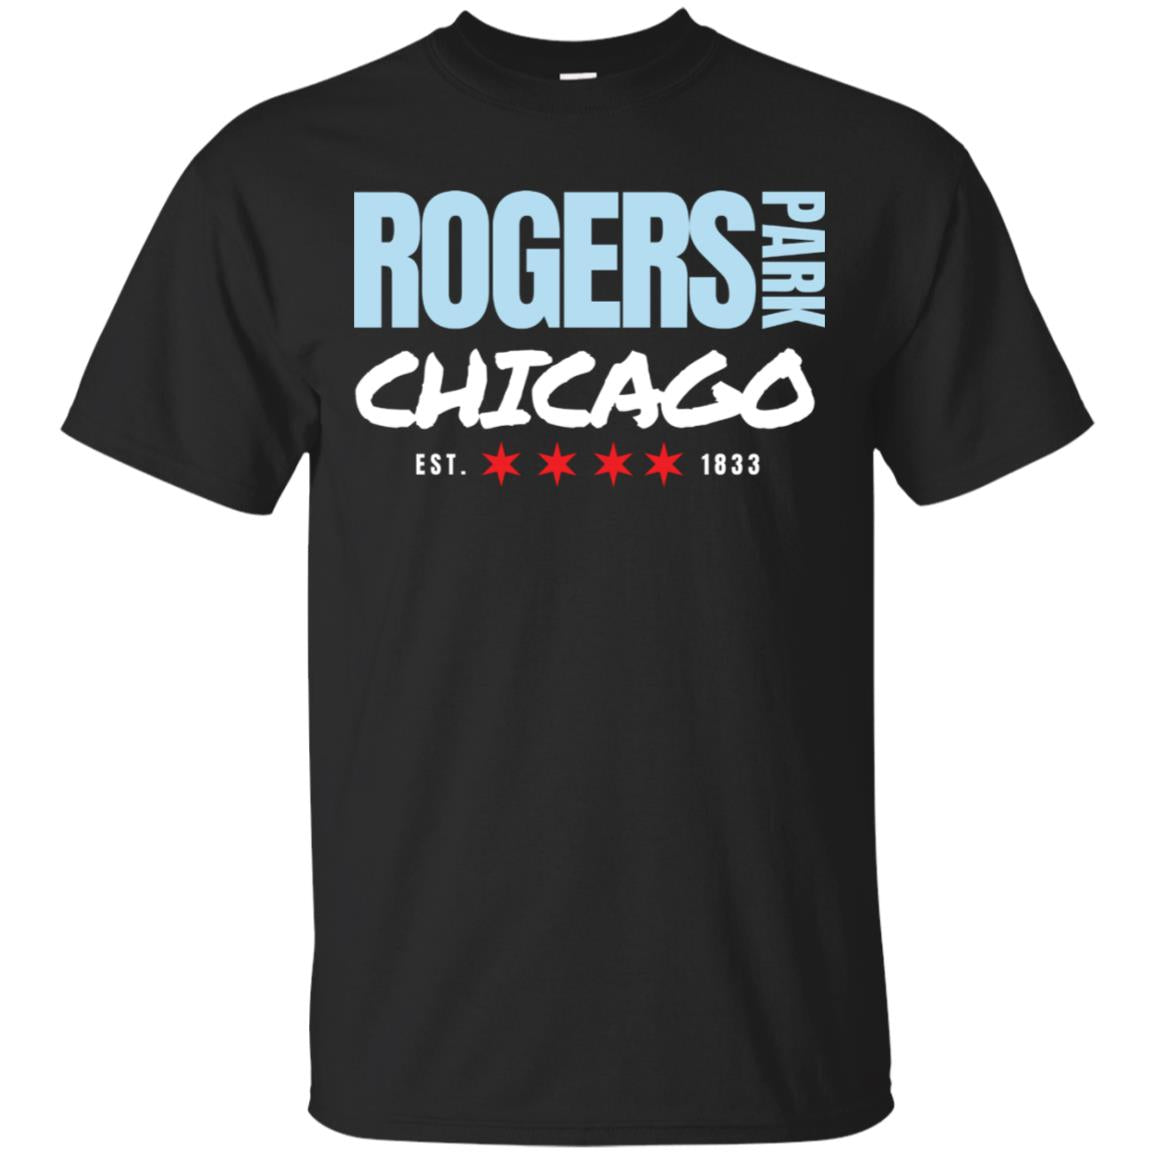 Rogers Park Chicago T-Shirt for Men Women 99promocode